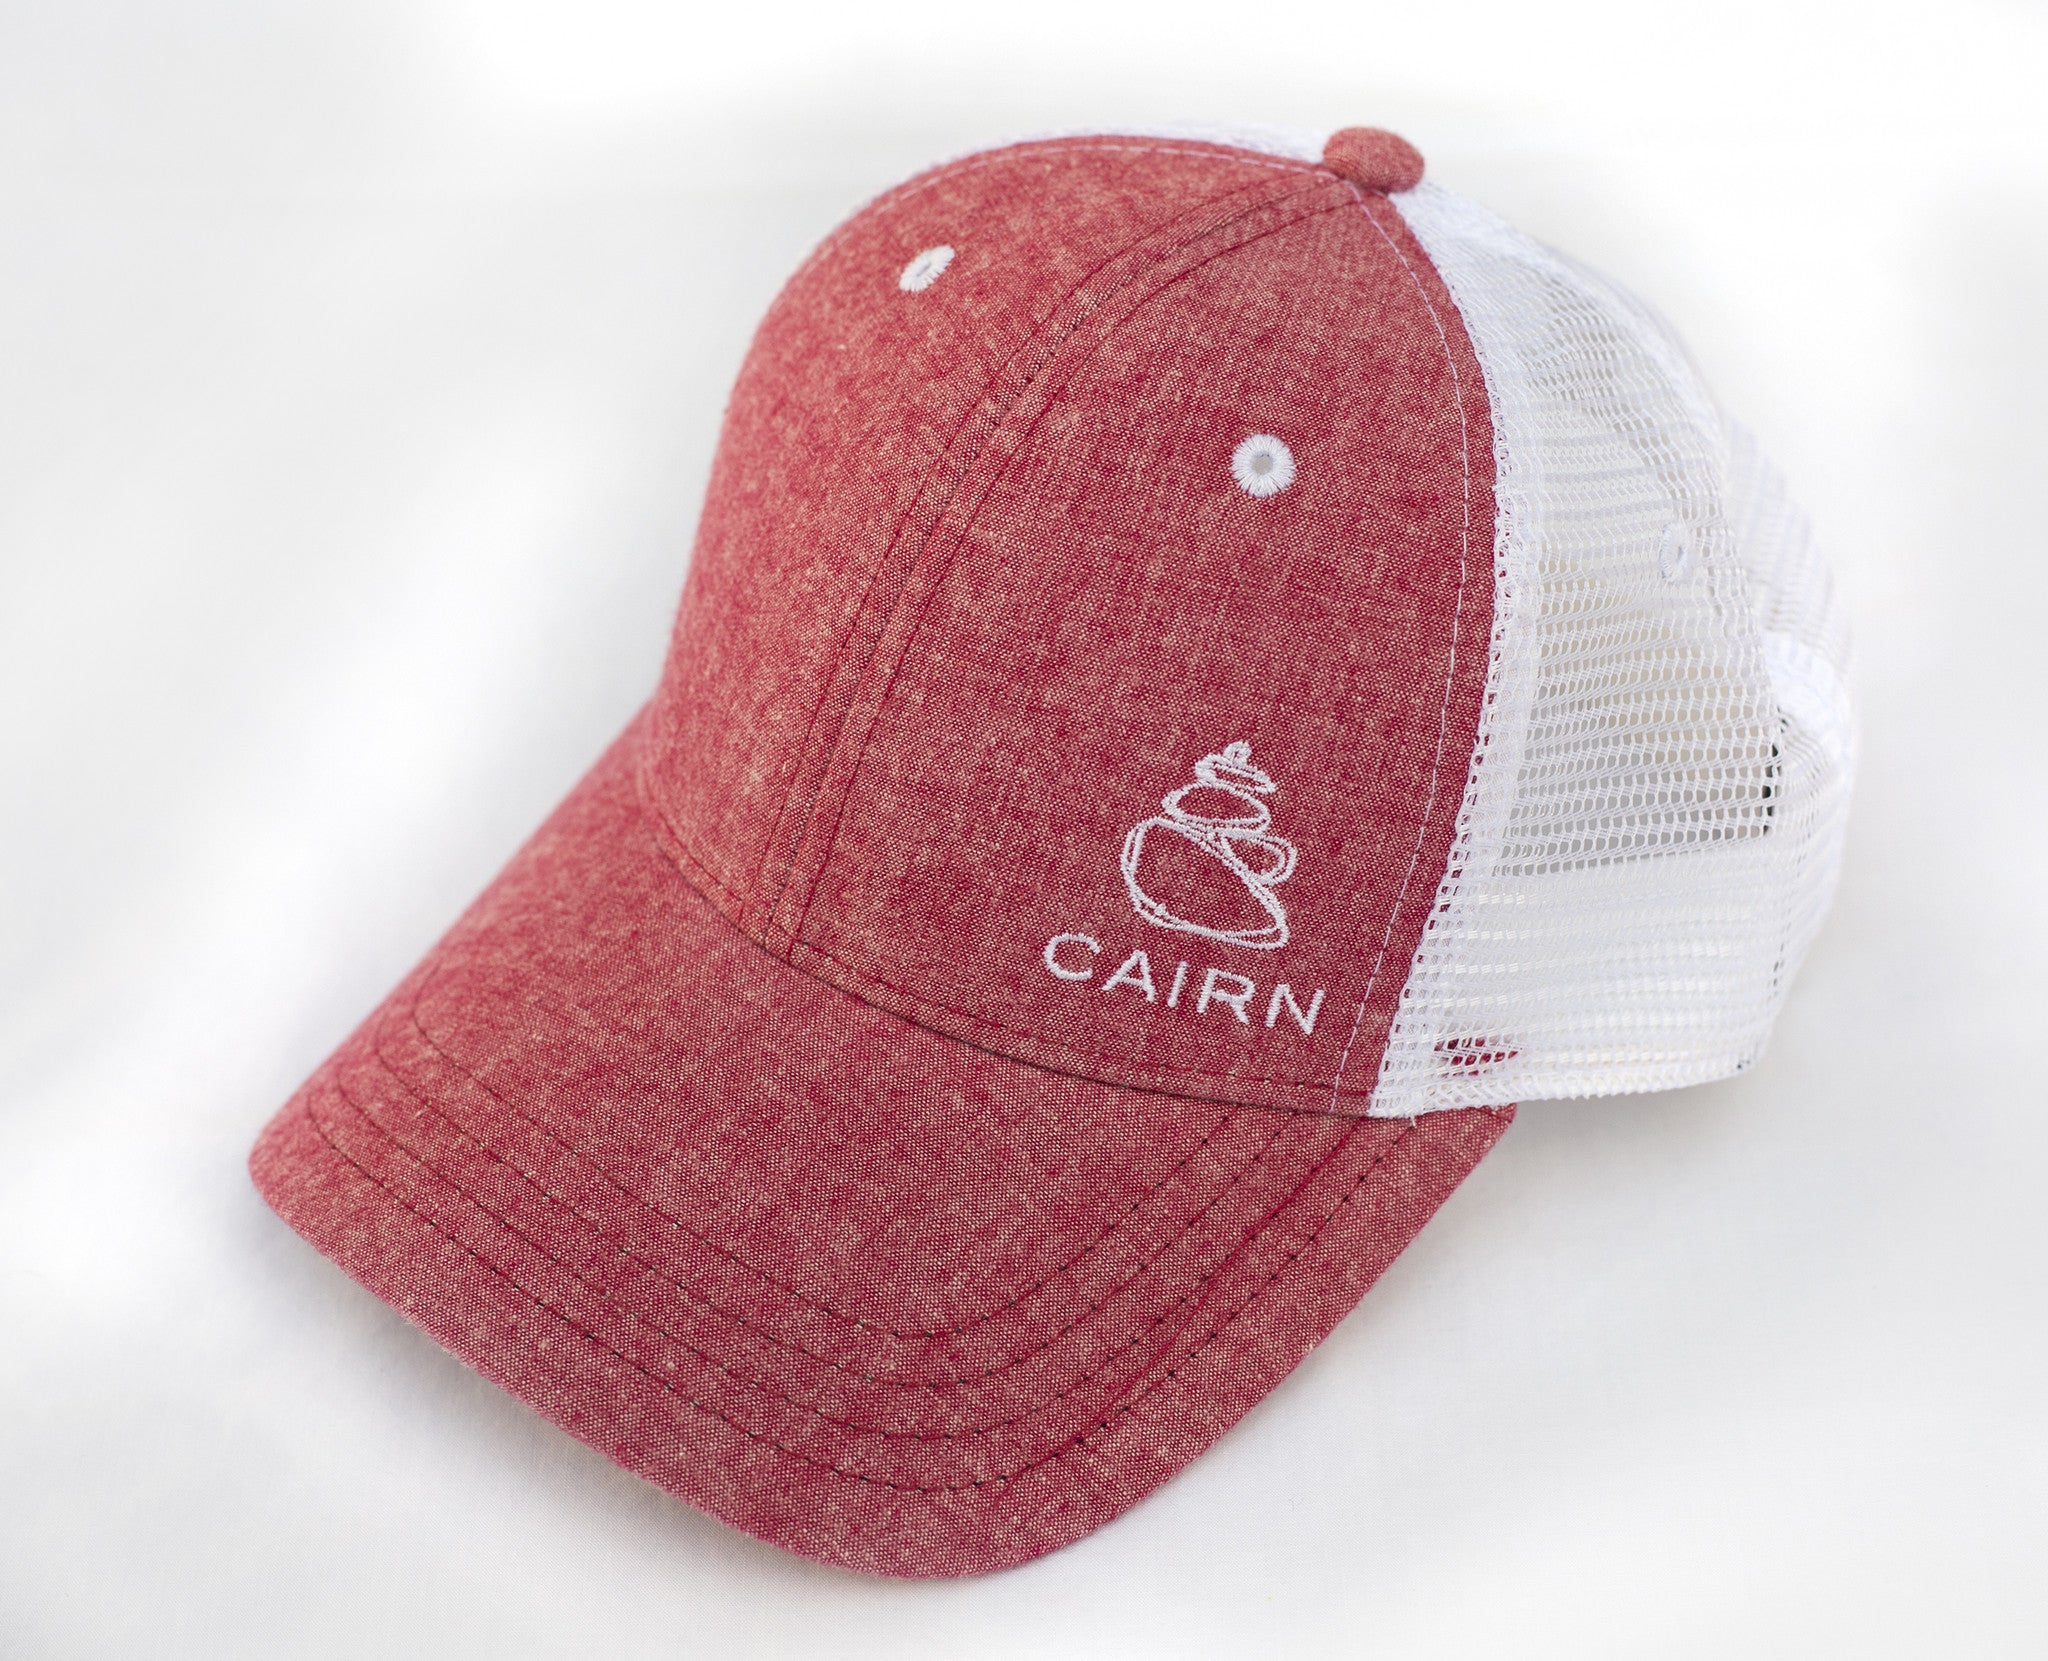 Cairn Low Profile Hats